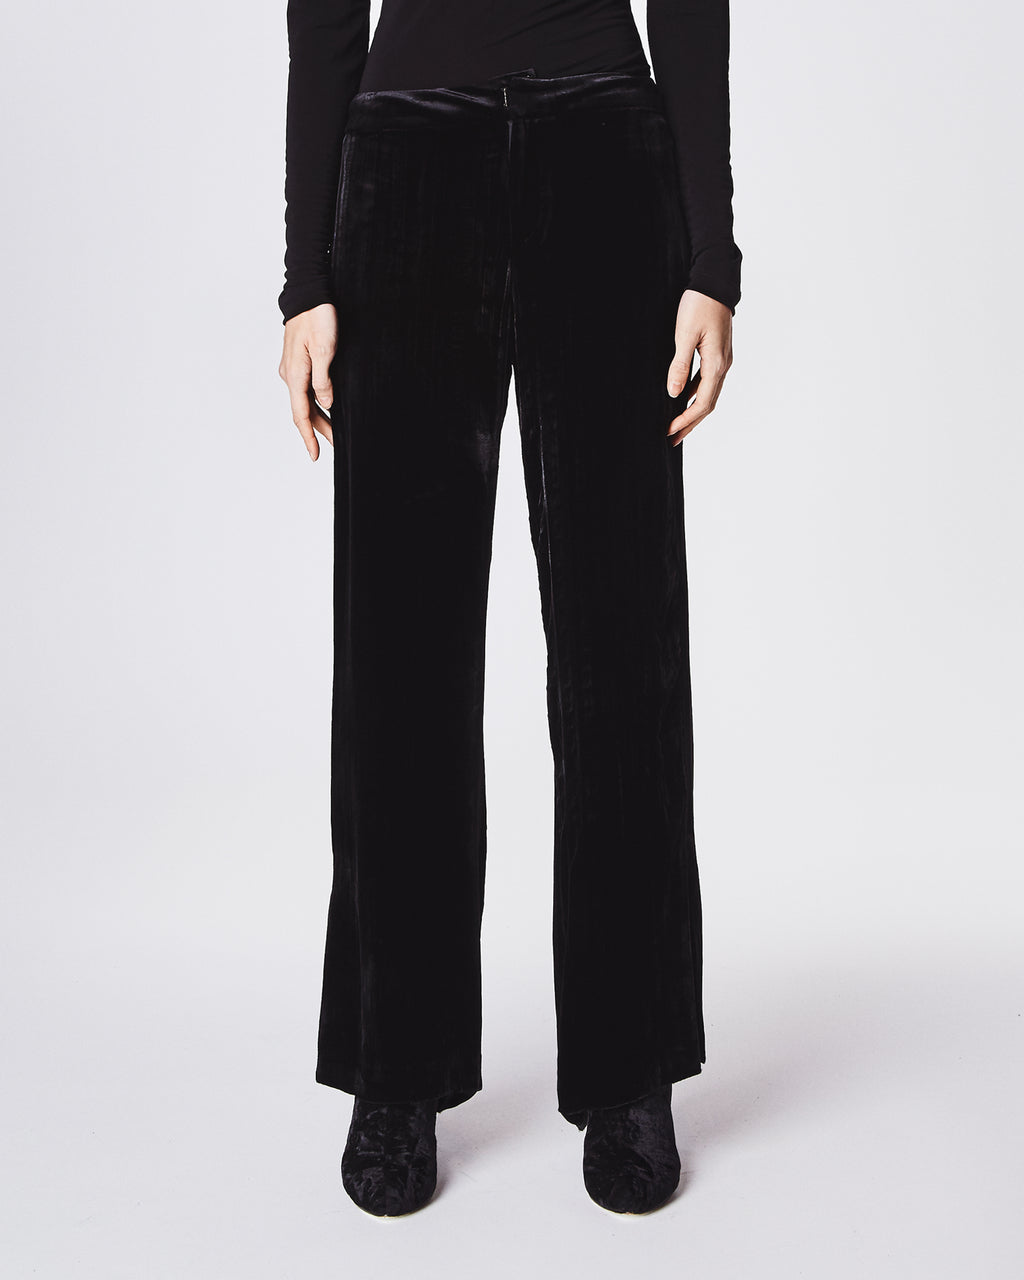 BM10197 - CRINKLED VELVET PANT - bottoms - pants - DREAMING IN VELVET. THESE HIGH-WAISTED PANTS SHOWCASE A SLIGHT CROP AND ANKLE SIDE SLITS. UNLINED. Final Sale